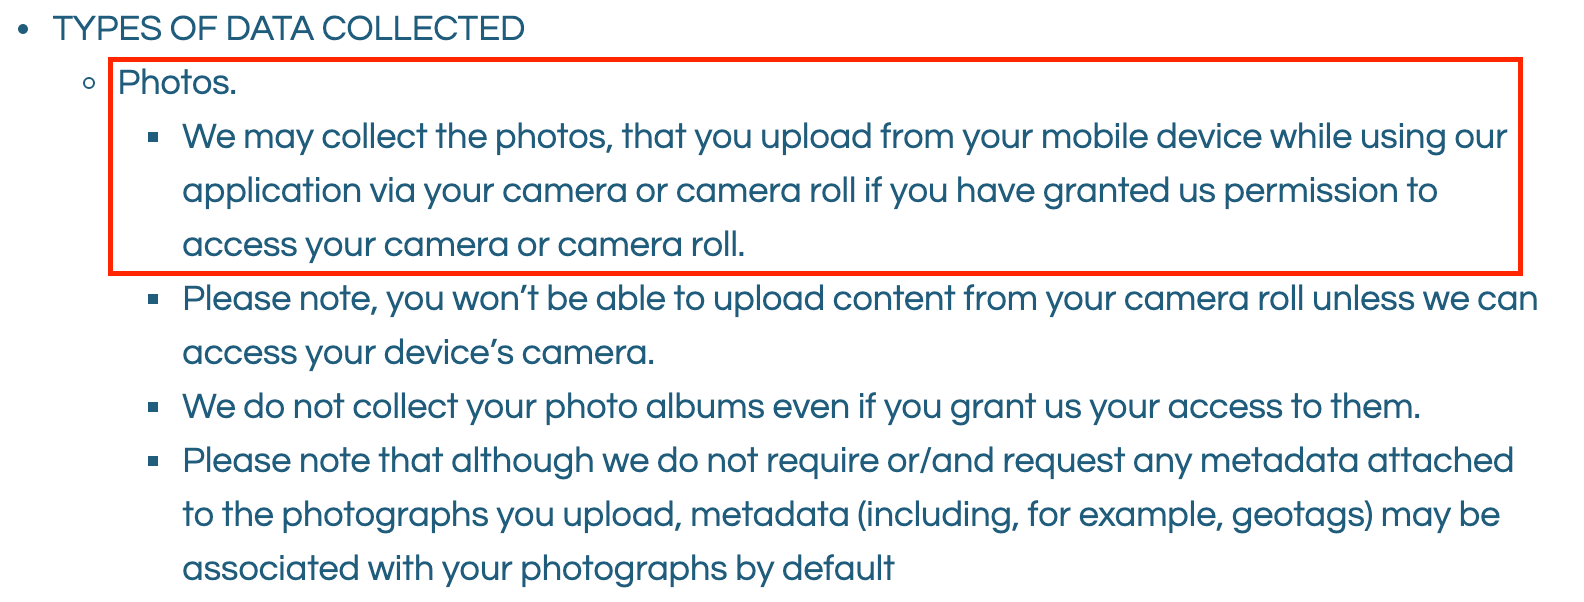 Screenshot from Voila App Privacy Policy